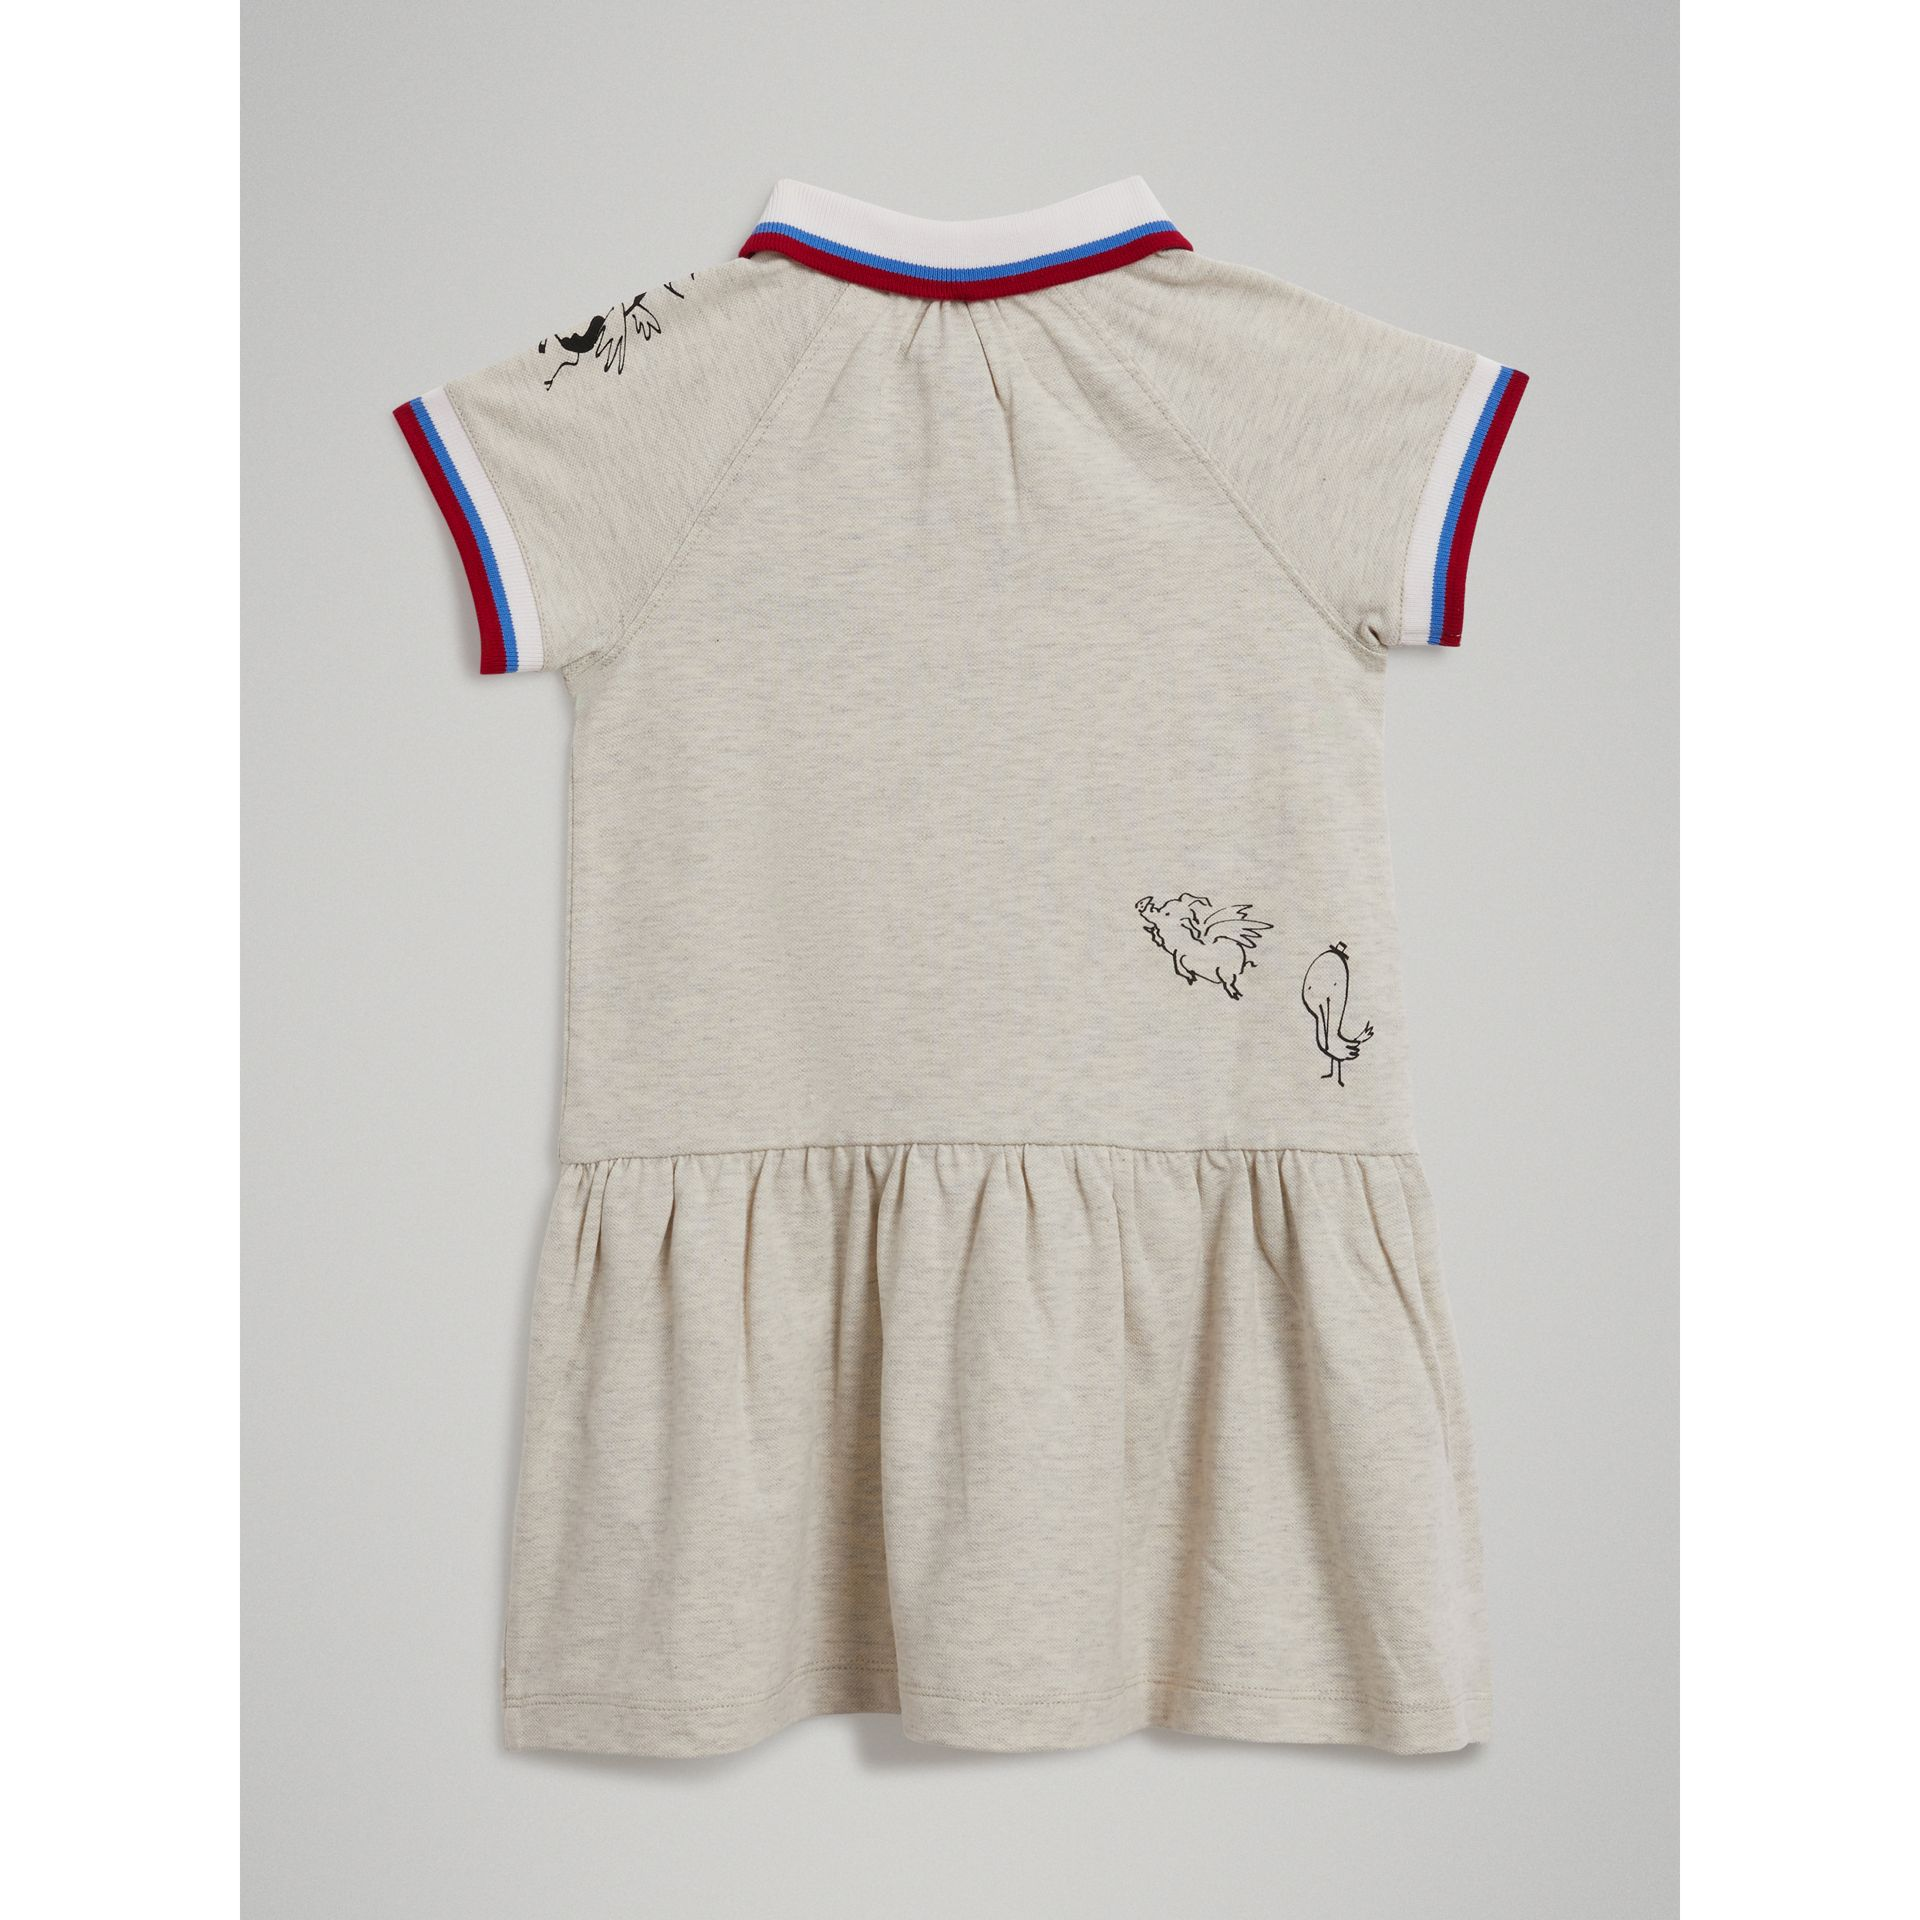 Robe polo en coton extensible (Camaïeu De Blancs) - Fille | Burberry Canada - photo de la galerie 3